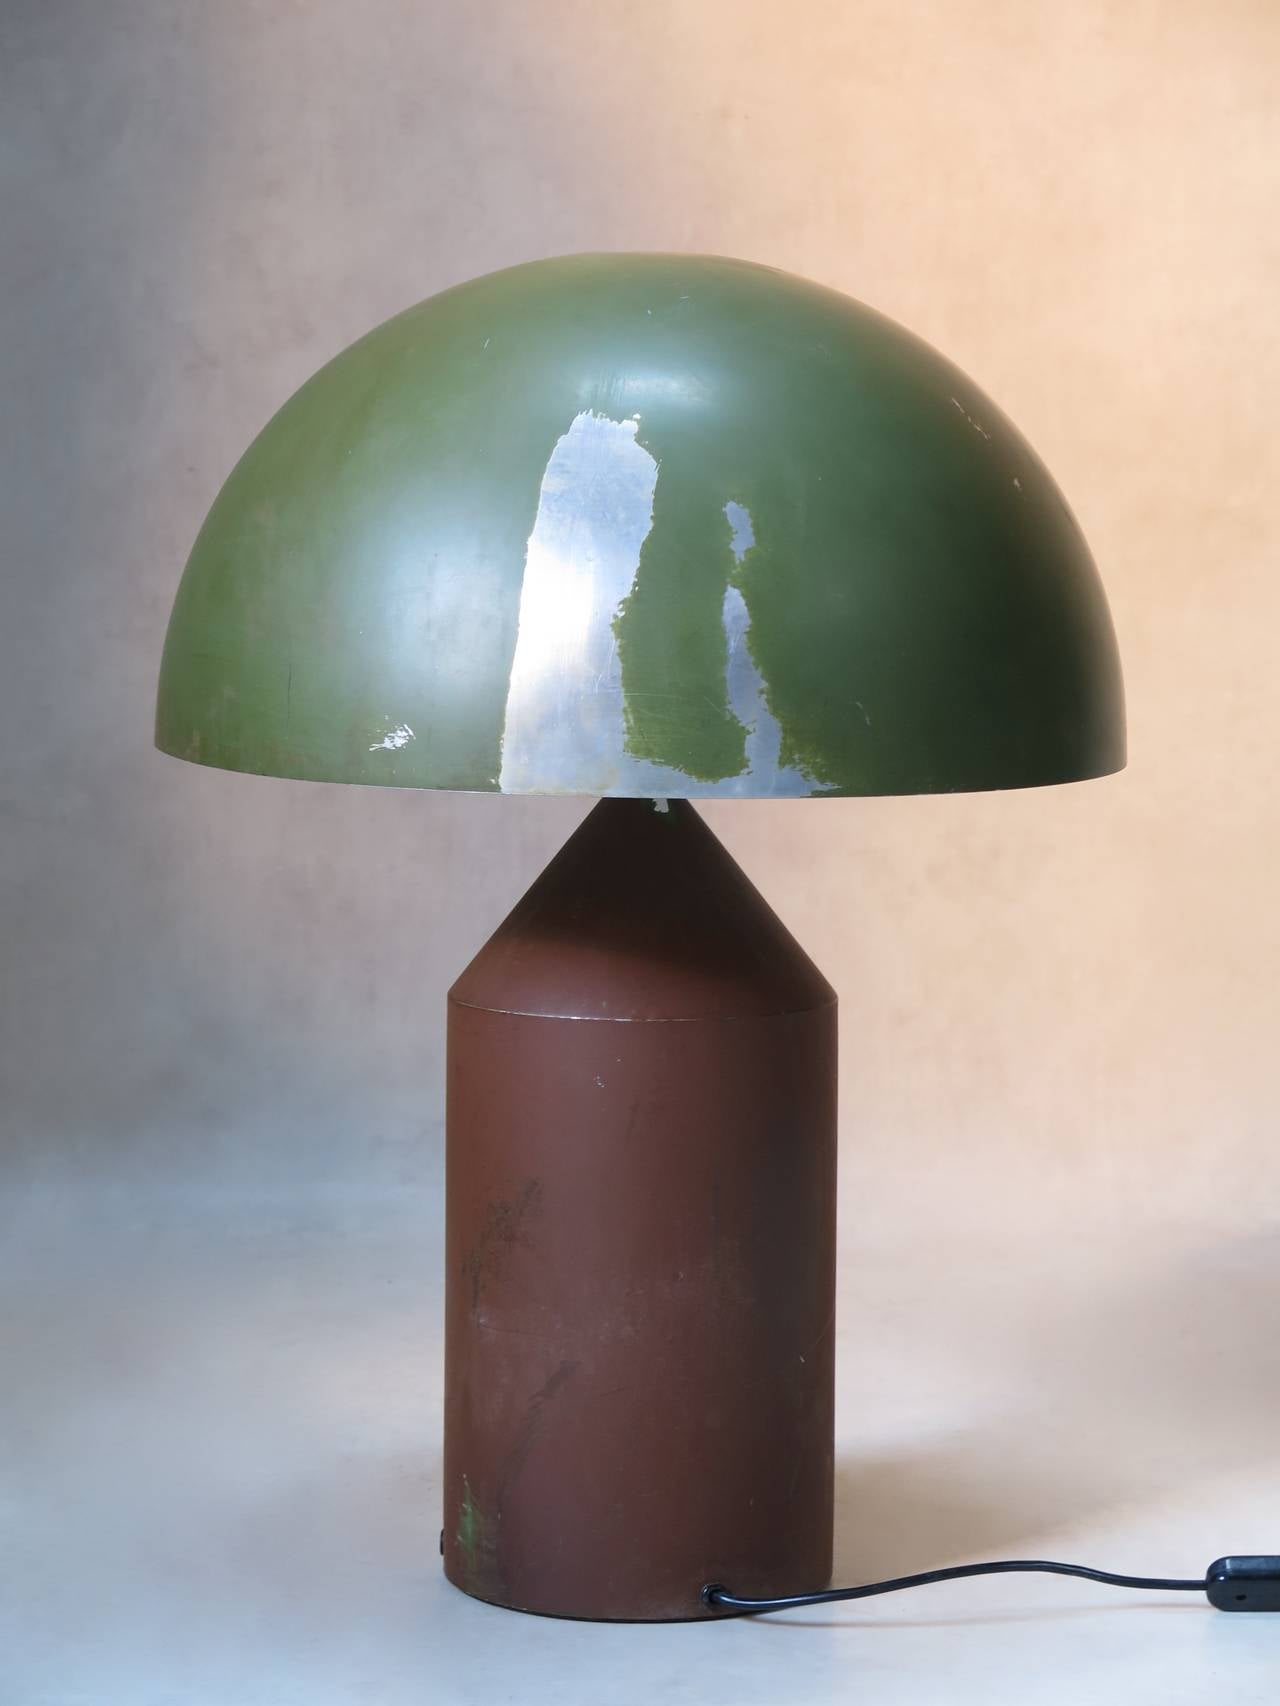 Rare Two-Tone Atollo Lamp by Vico Magistretti for O Luce In Distressed Condition In Isle Sur La Sorgue, Vaucluse